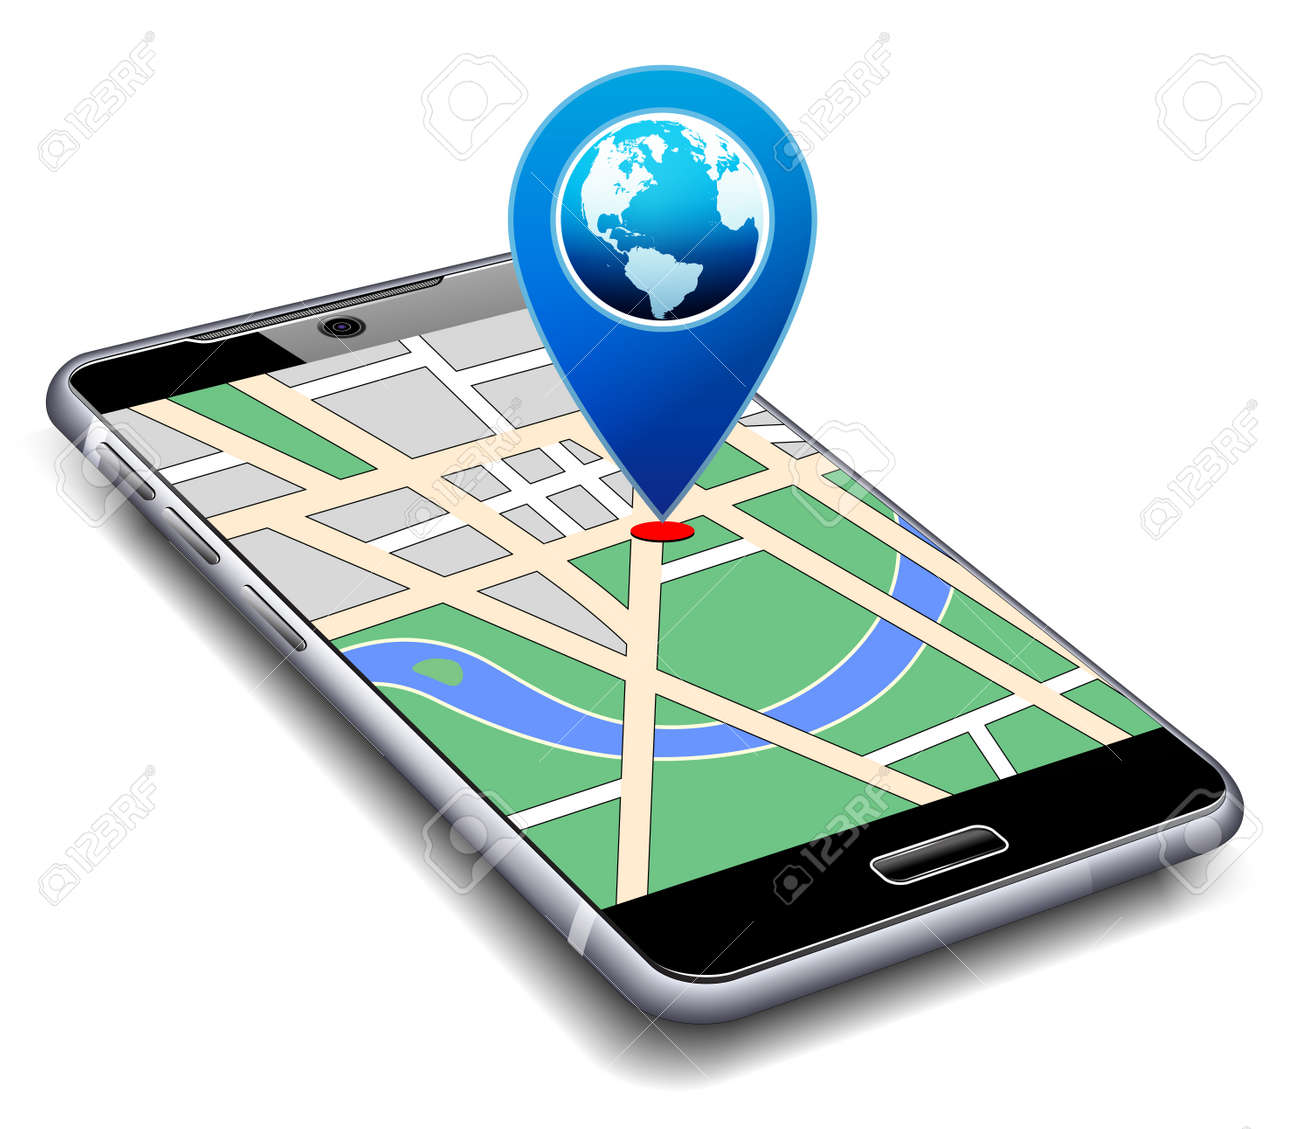 You are Here - Phone with Map Pointer Icon Cell Smart Mobile - 51244016